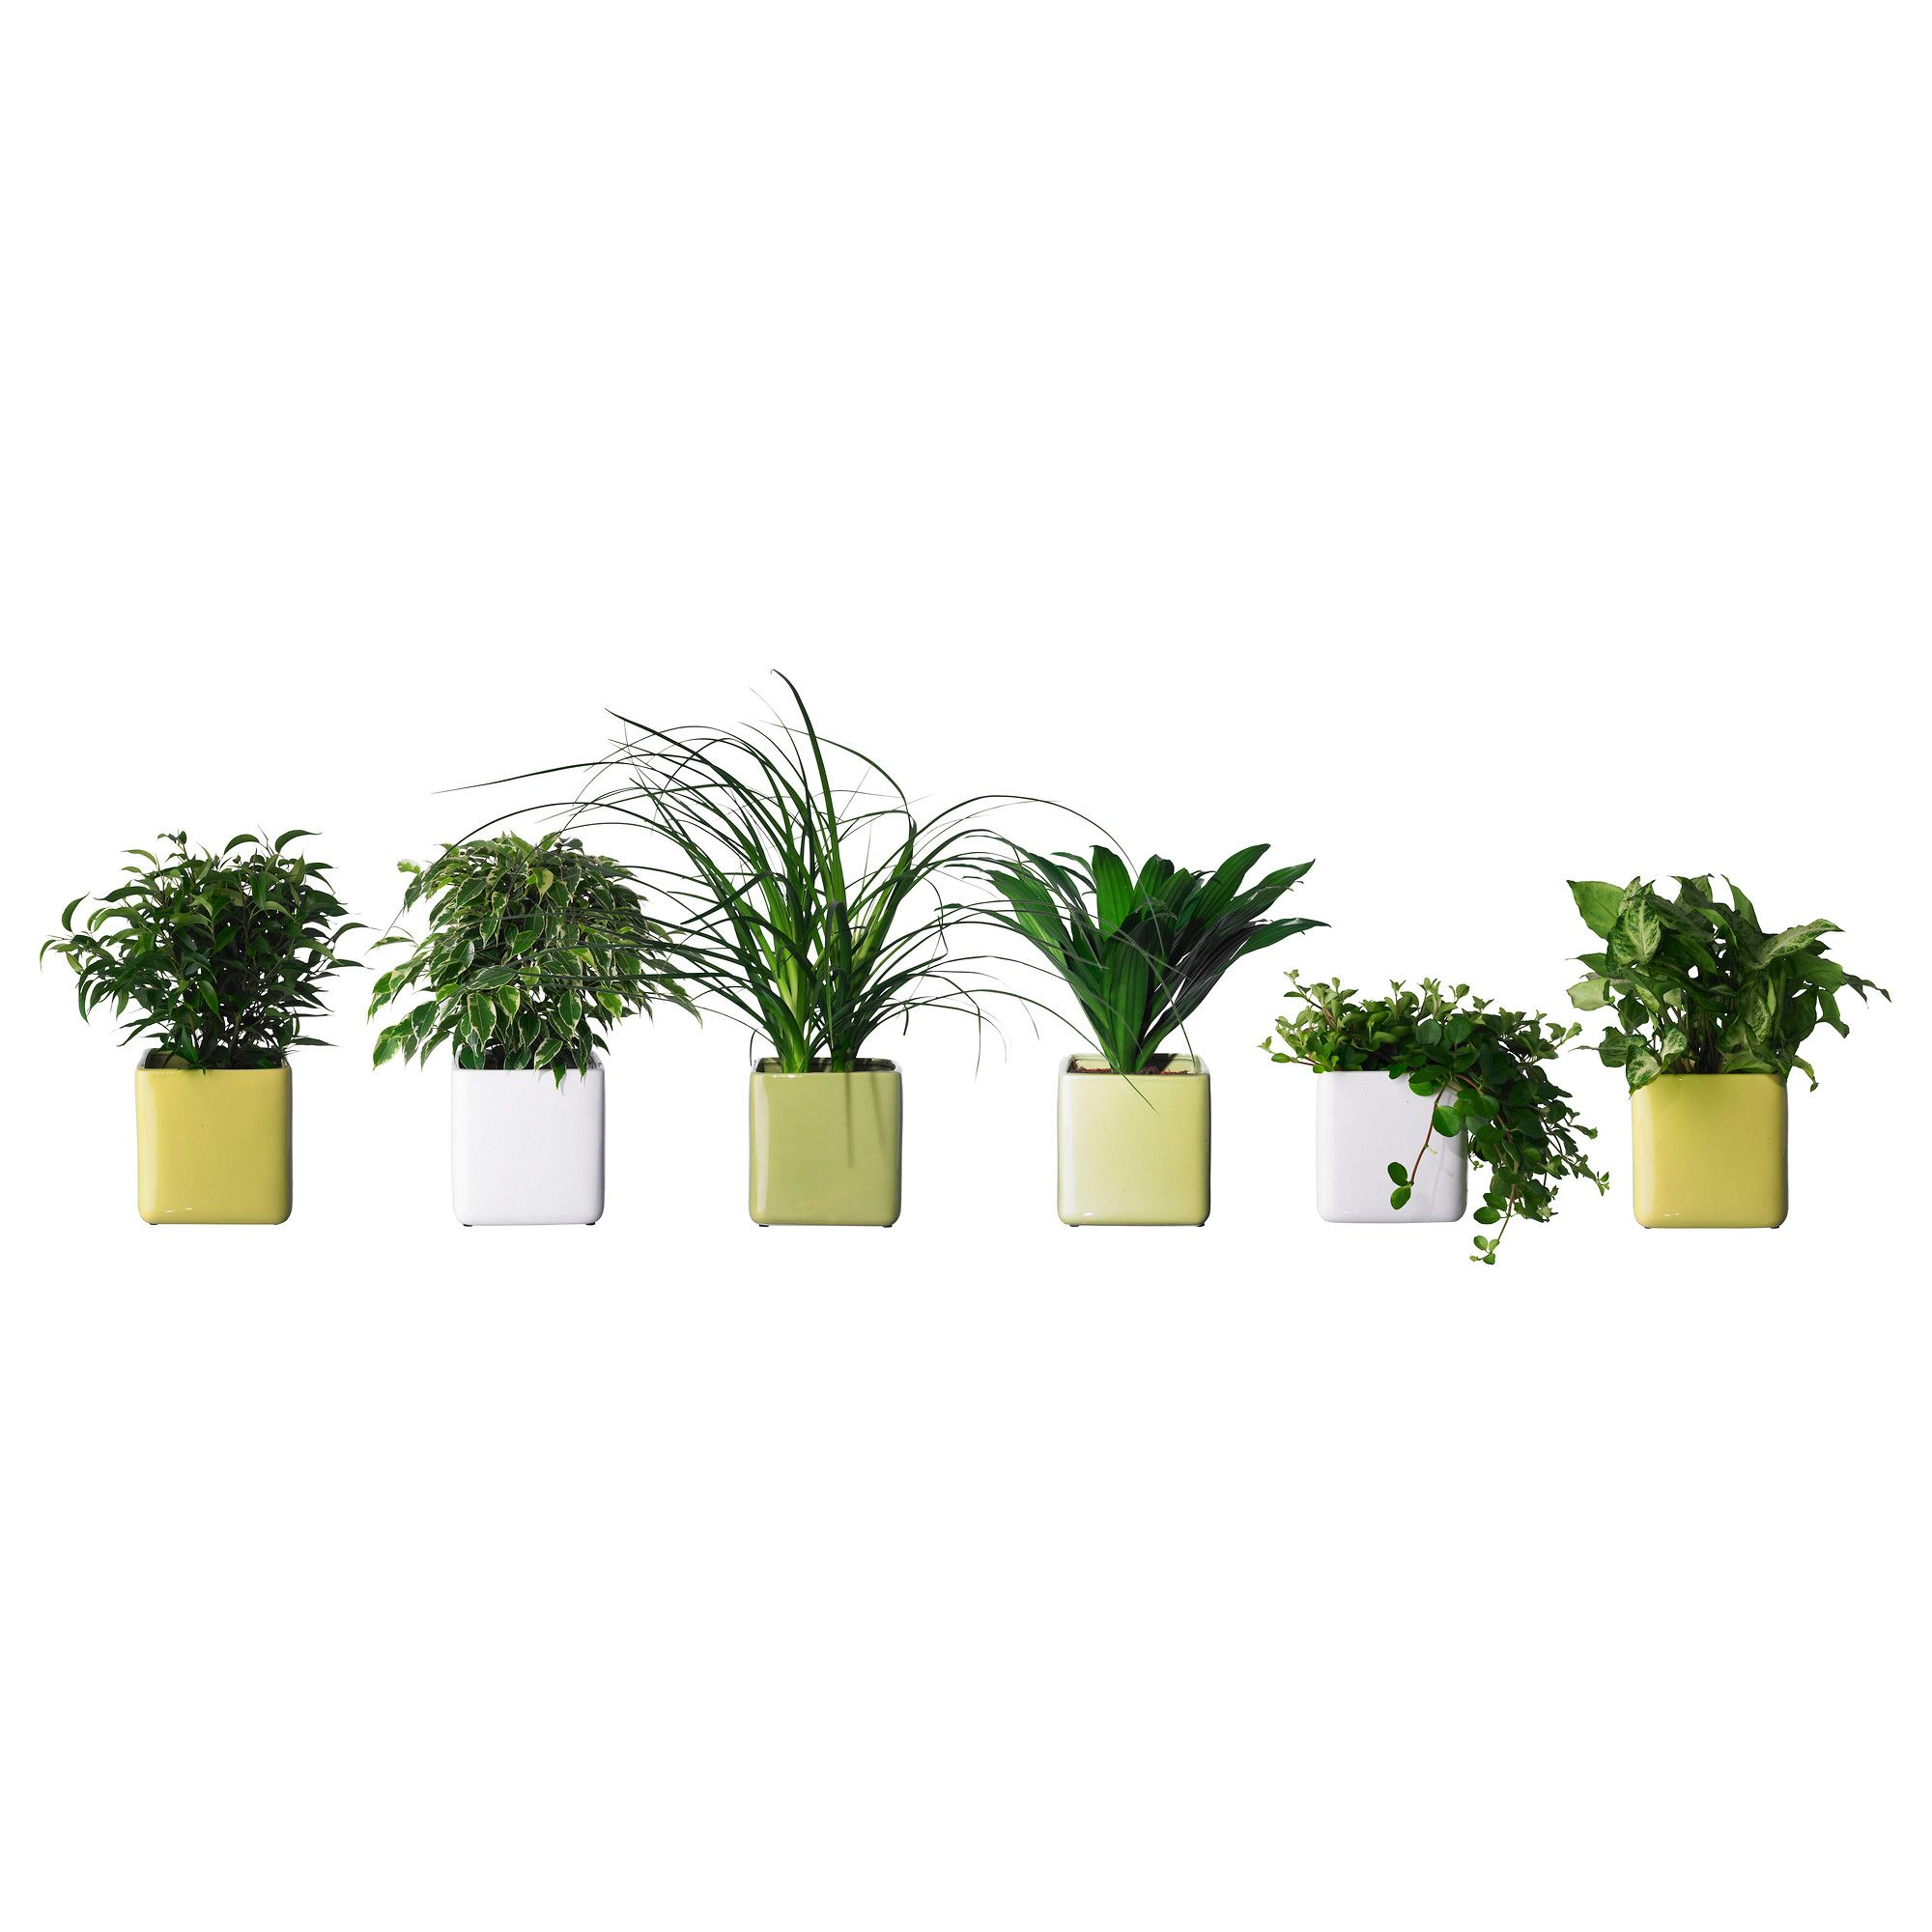 Stollig potted plant with pot ikea livingroom and for Ikea plantes